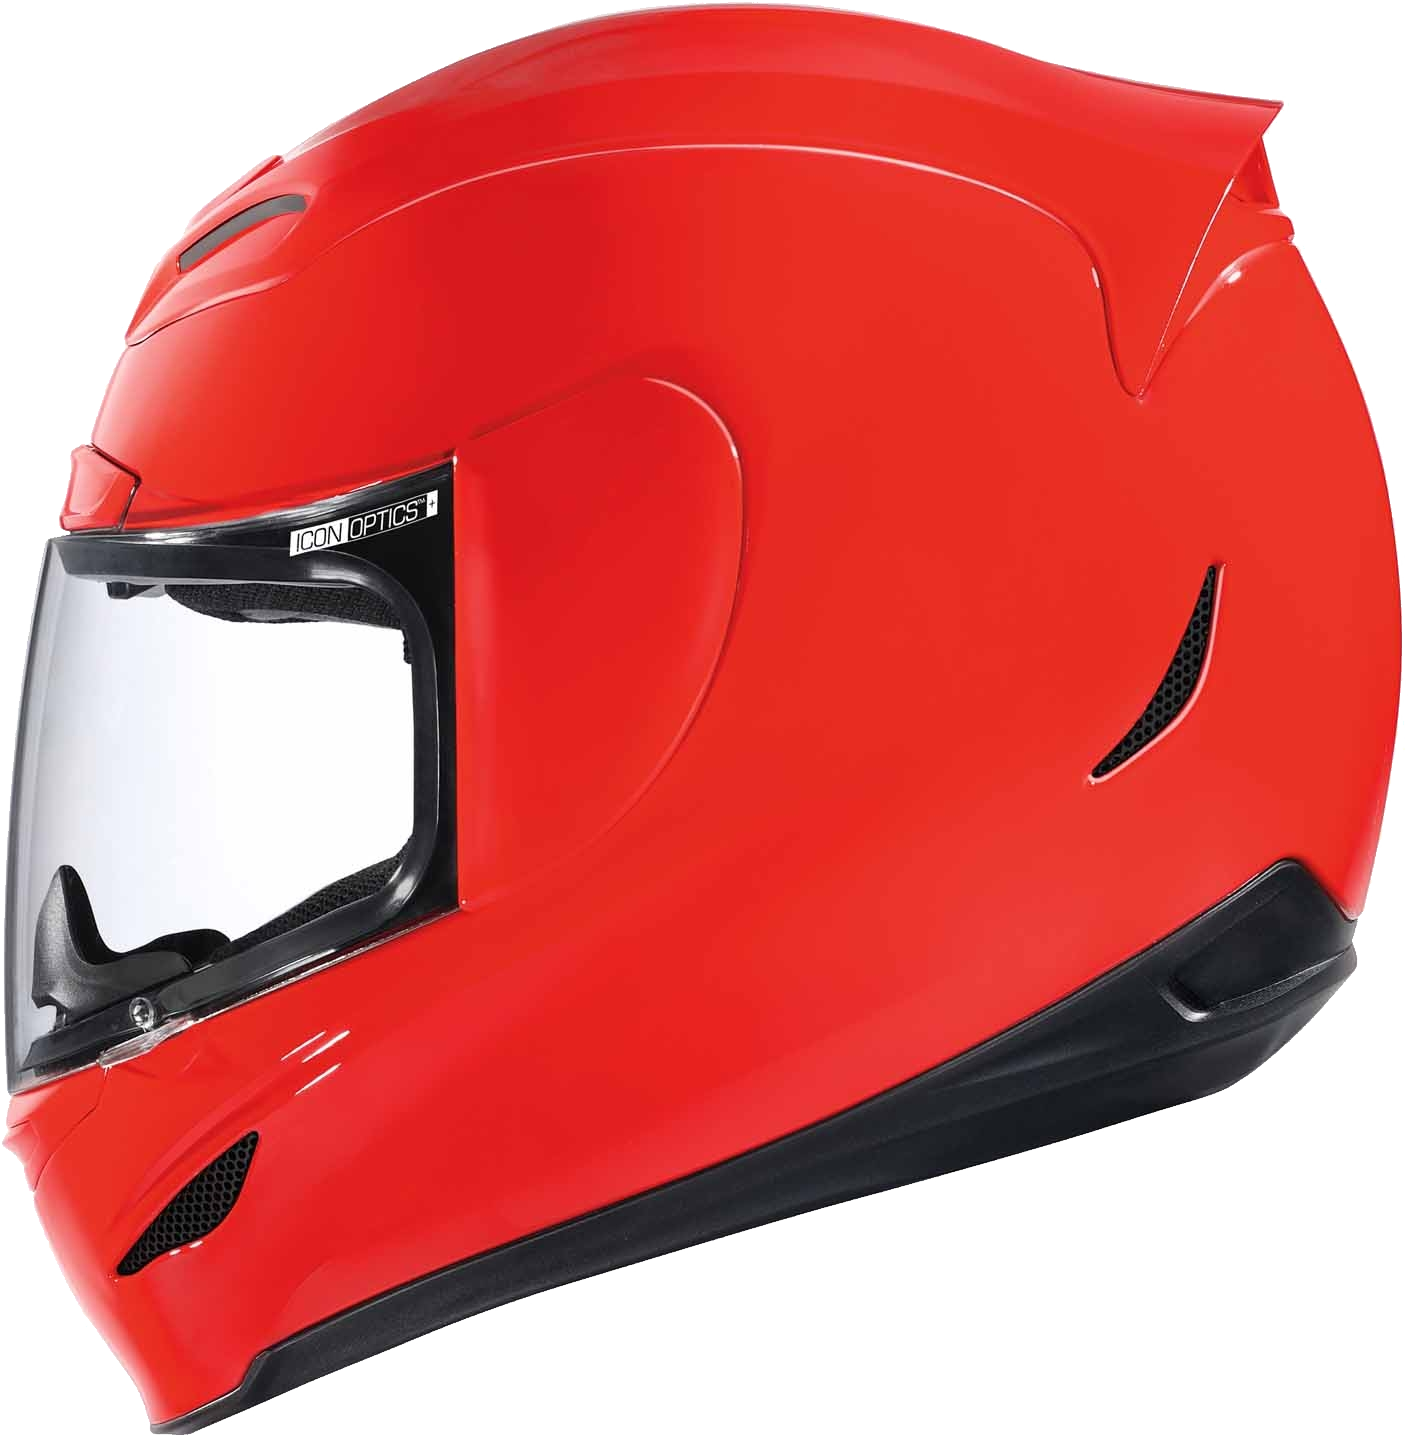 helmet, clipart motorcycle gear clipground #26699